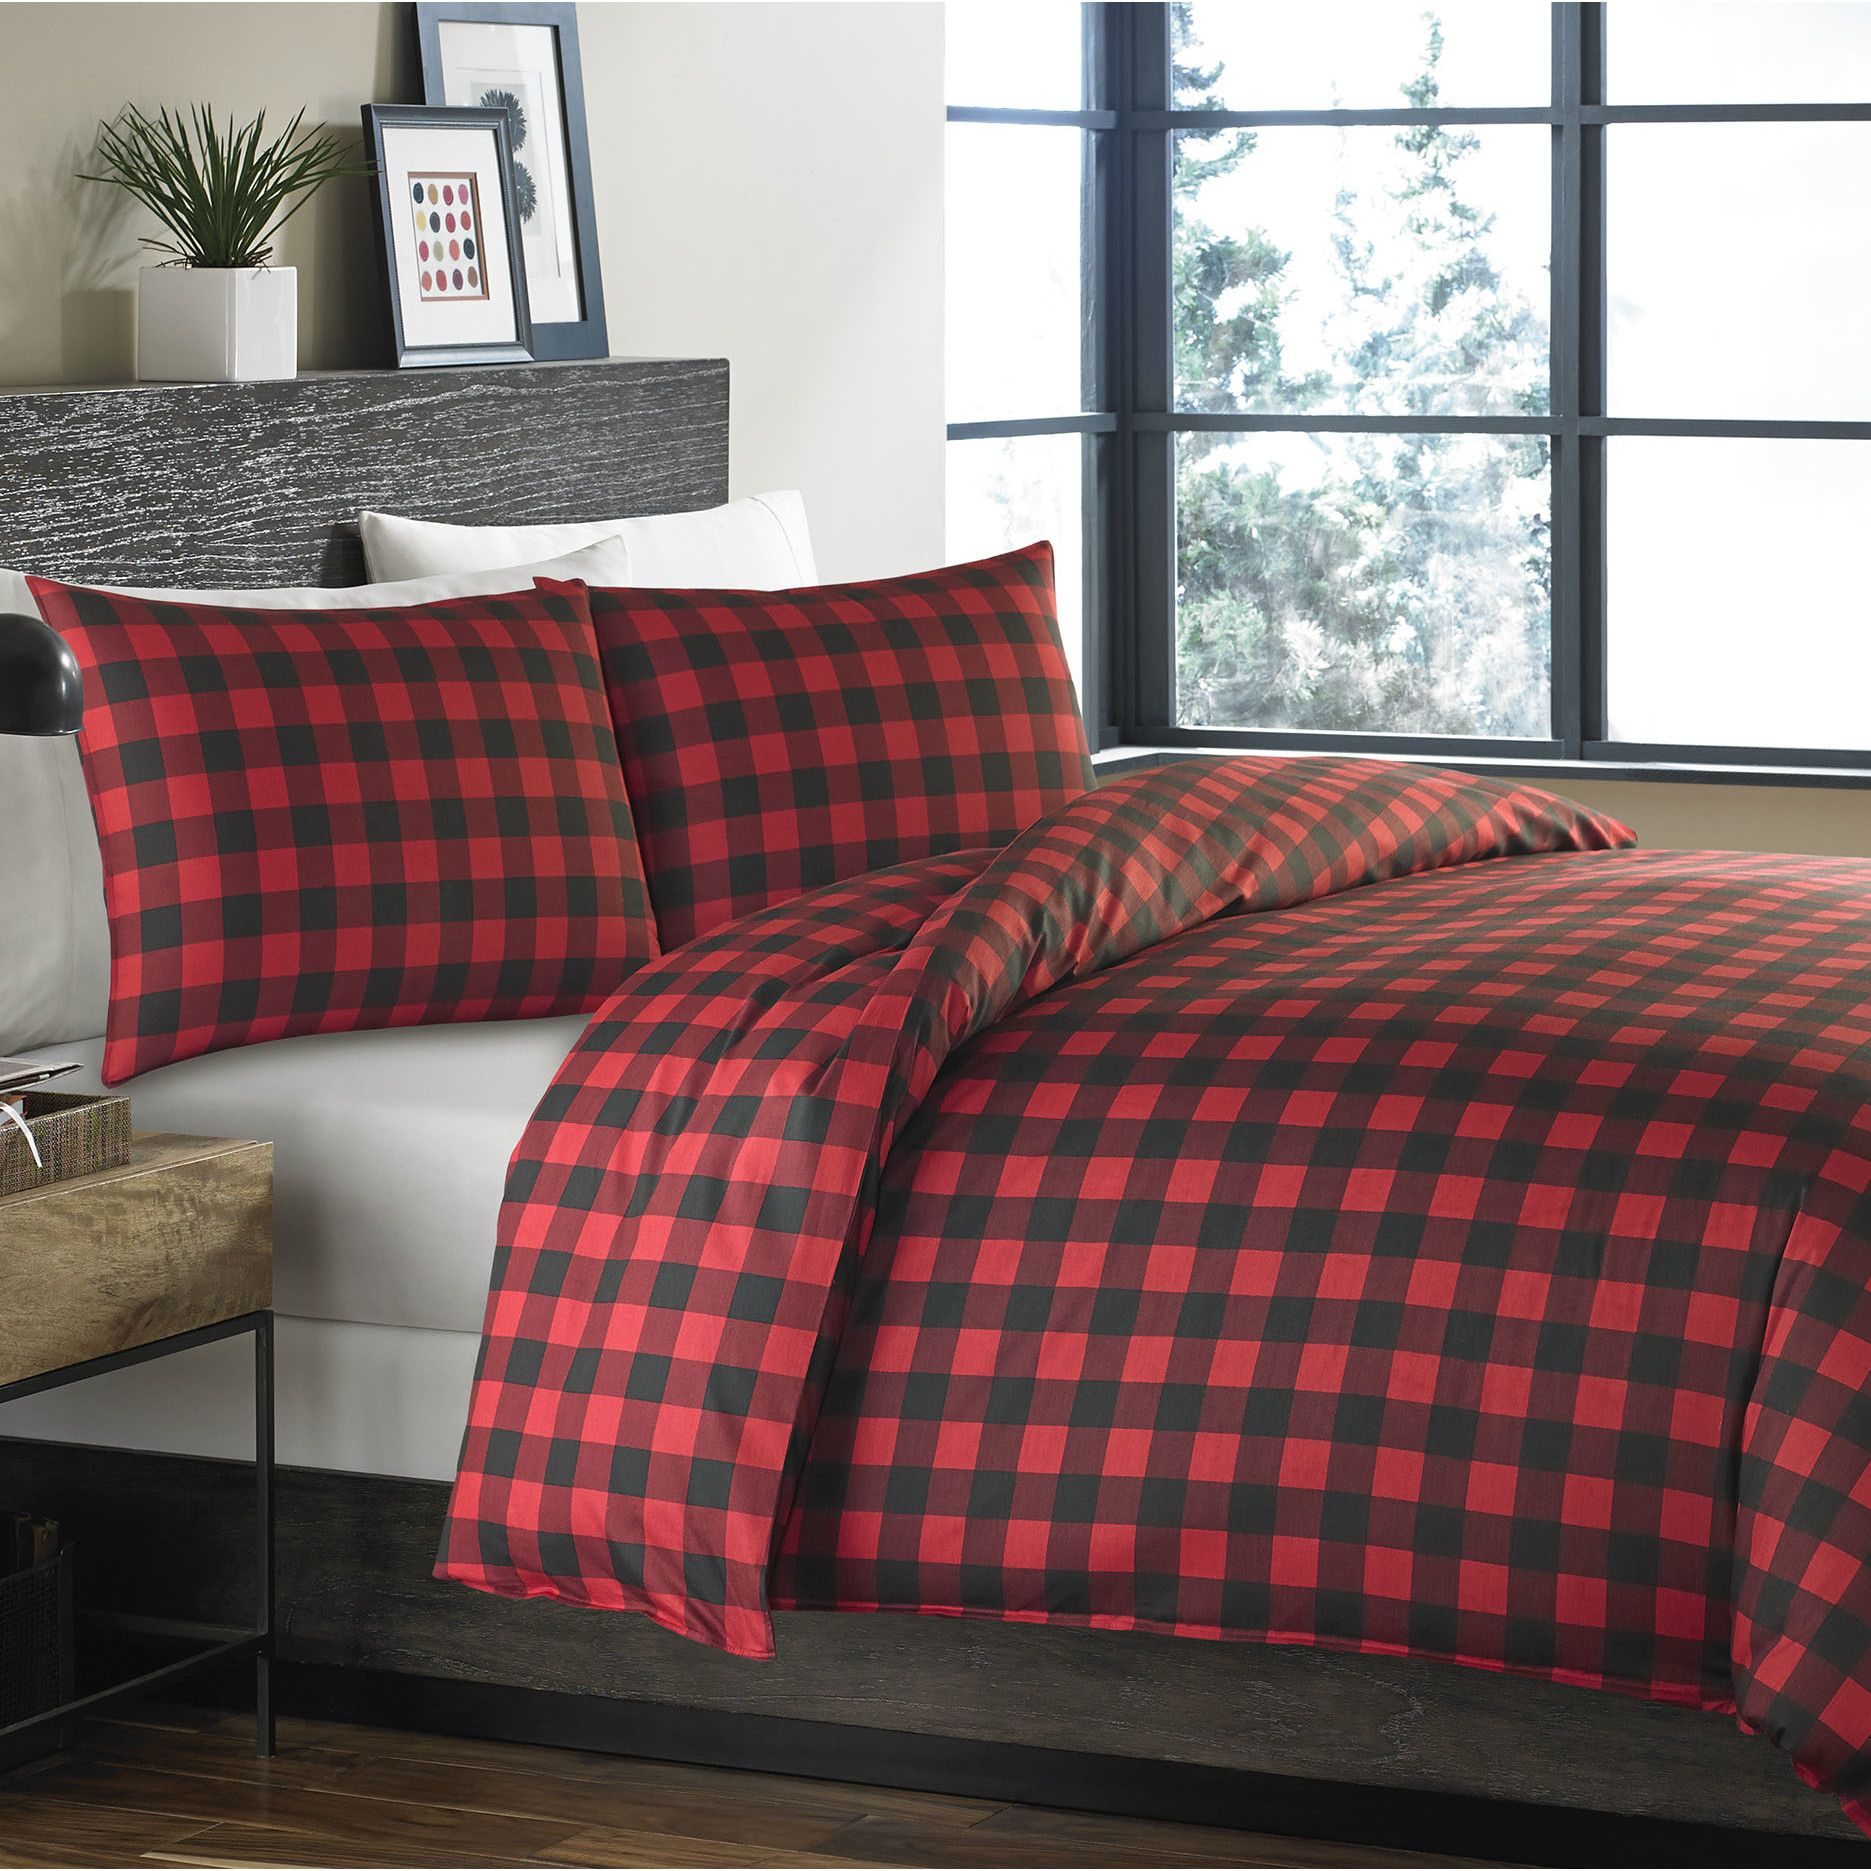 set full bedding doona ideas sets ae for above red california of we astonishing homesense on turquoise beyond beds bath white size black insert blanket comforter teal beyondabove your bedroom double duvets reasons plaid duvet covers bed canada dorm love large best king brilliant cover and